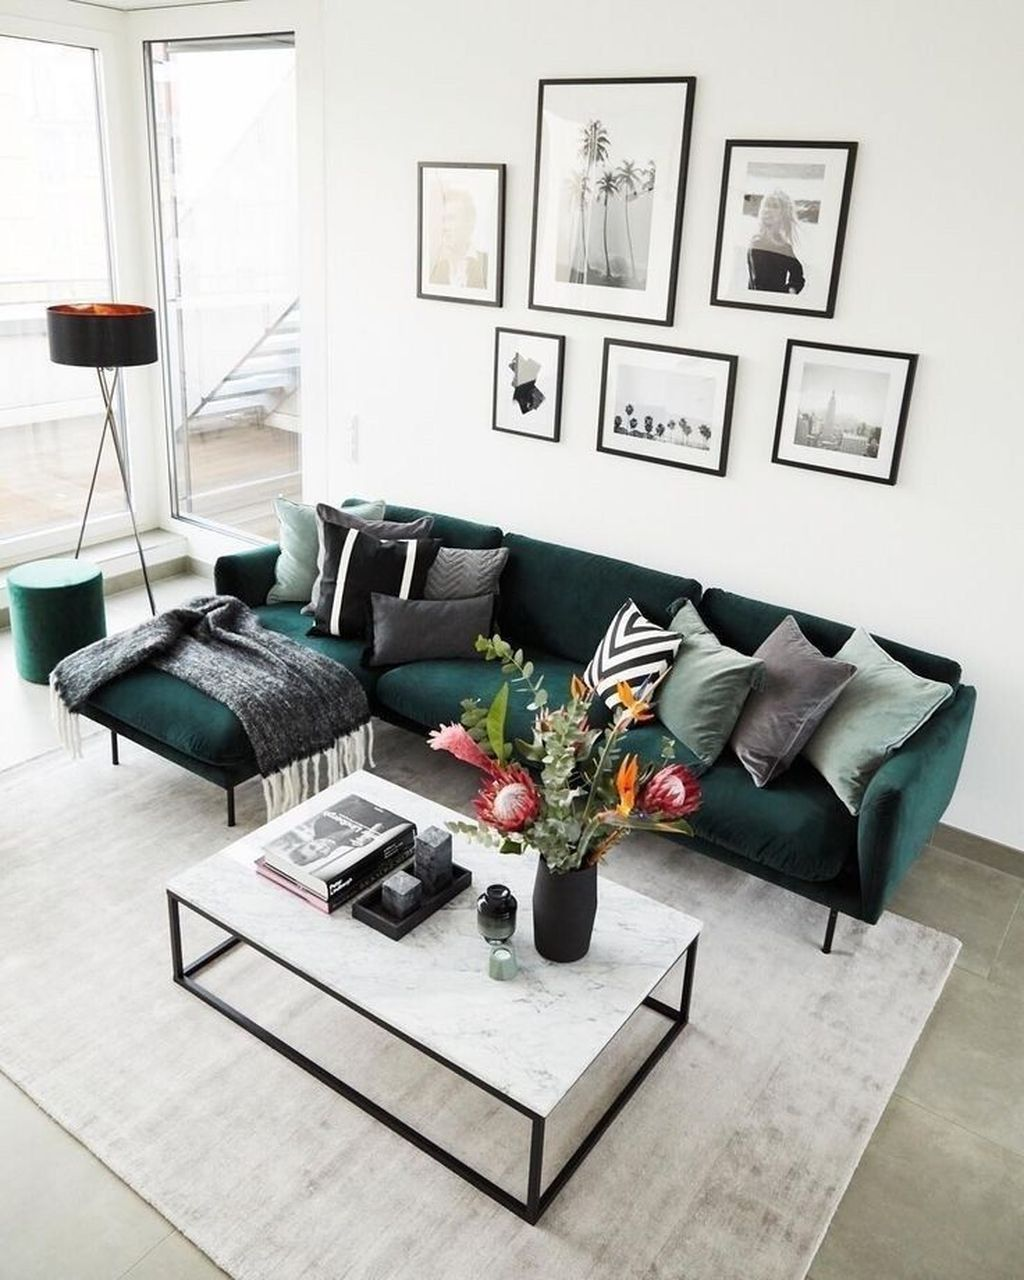 30 Unusual Corner Sofa Ideas That You Can Apply In The Living Room In 2020 Small Apartment Decorating Living Room Living Room Decor Modern Living Room Decor Apartment #unusual #living #room #furniture